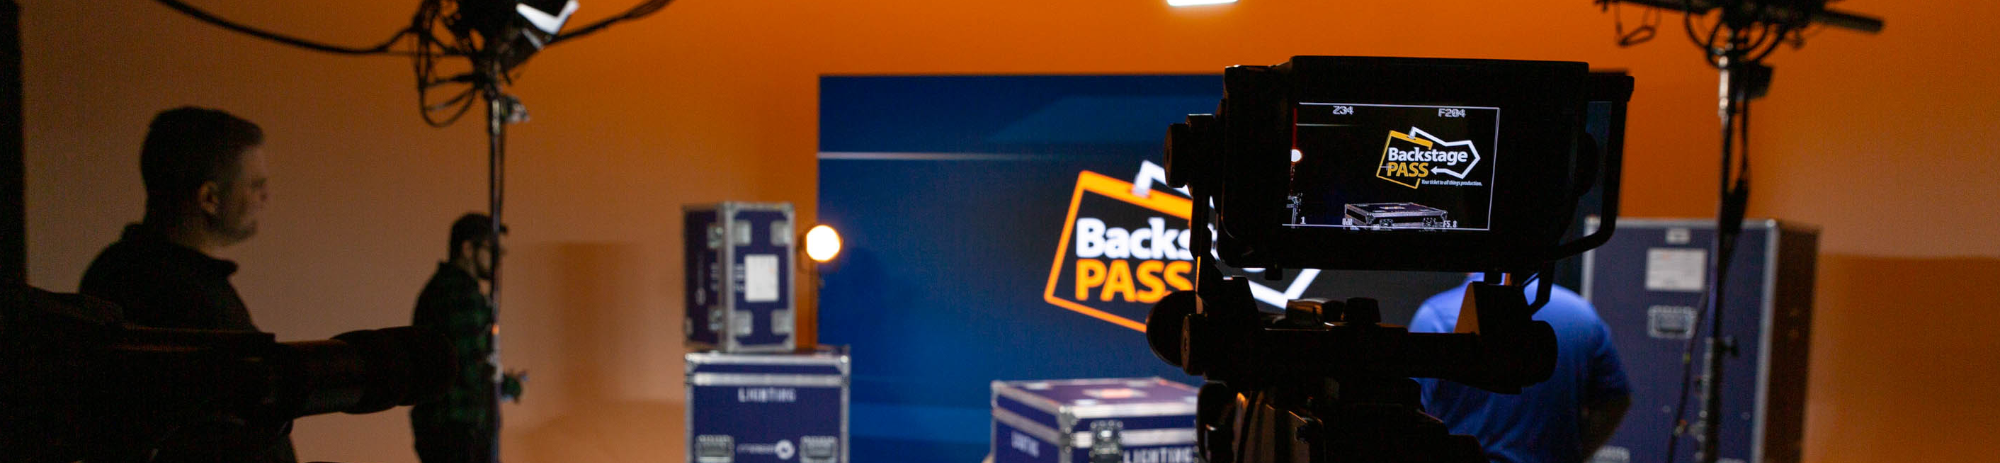 Backstage Pass Video Banner